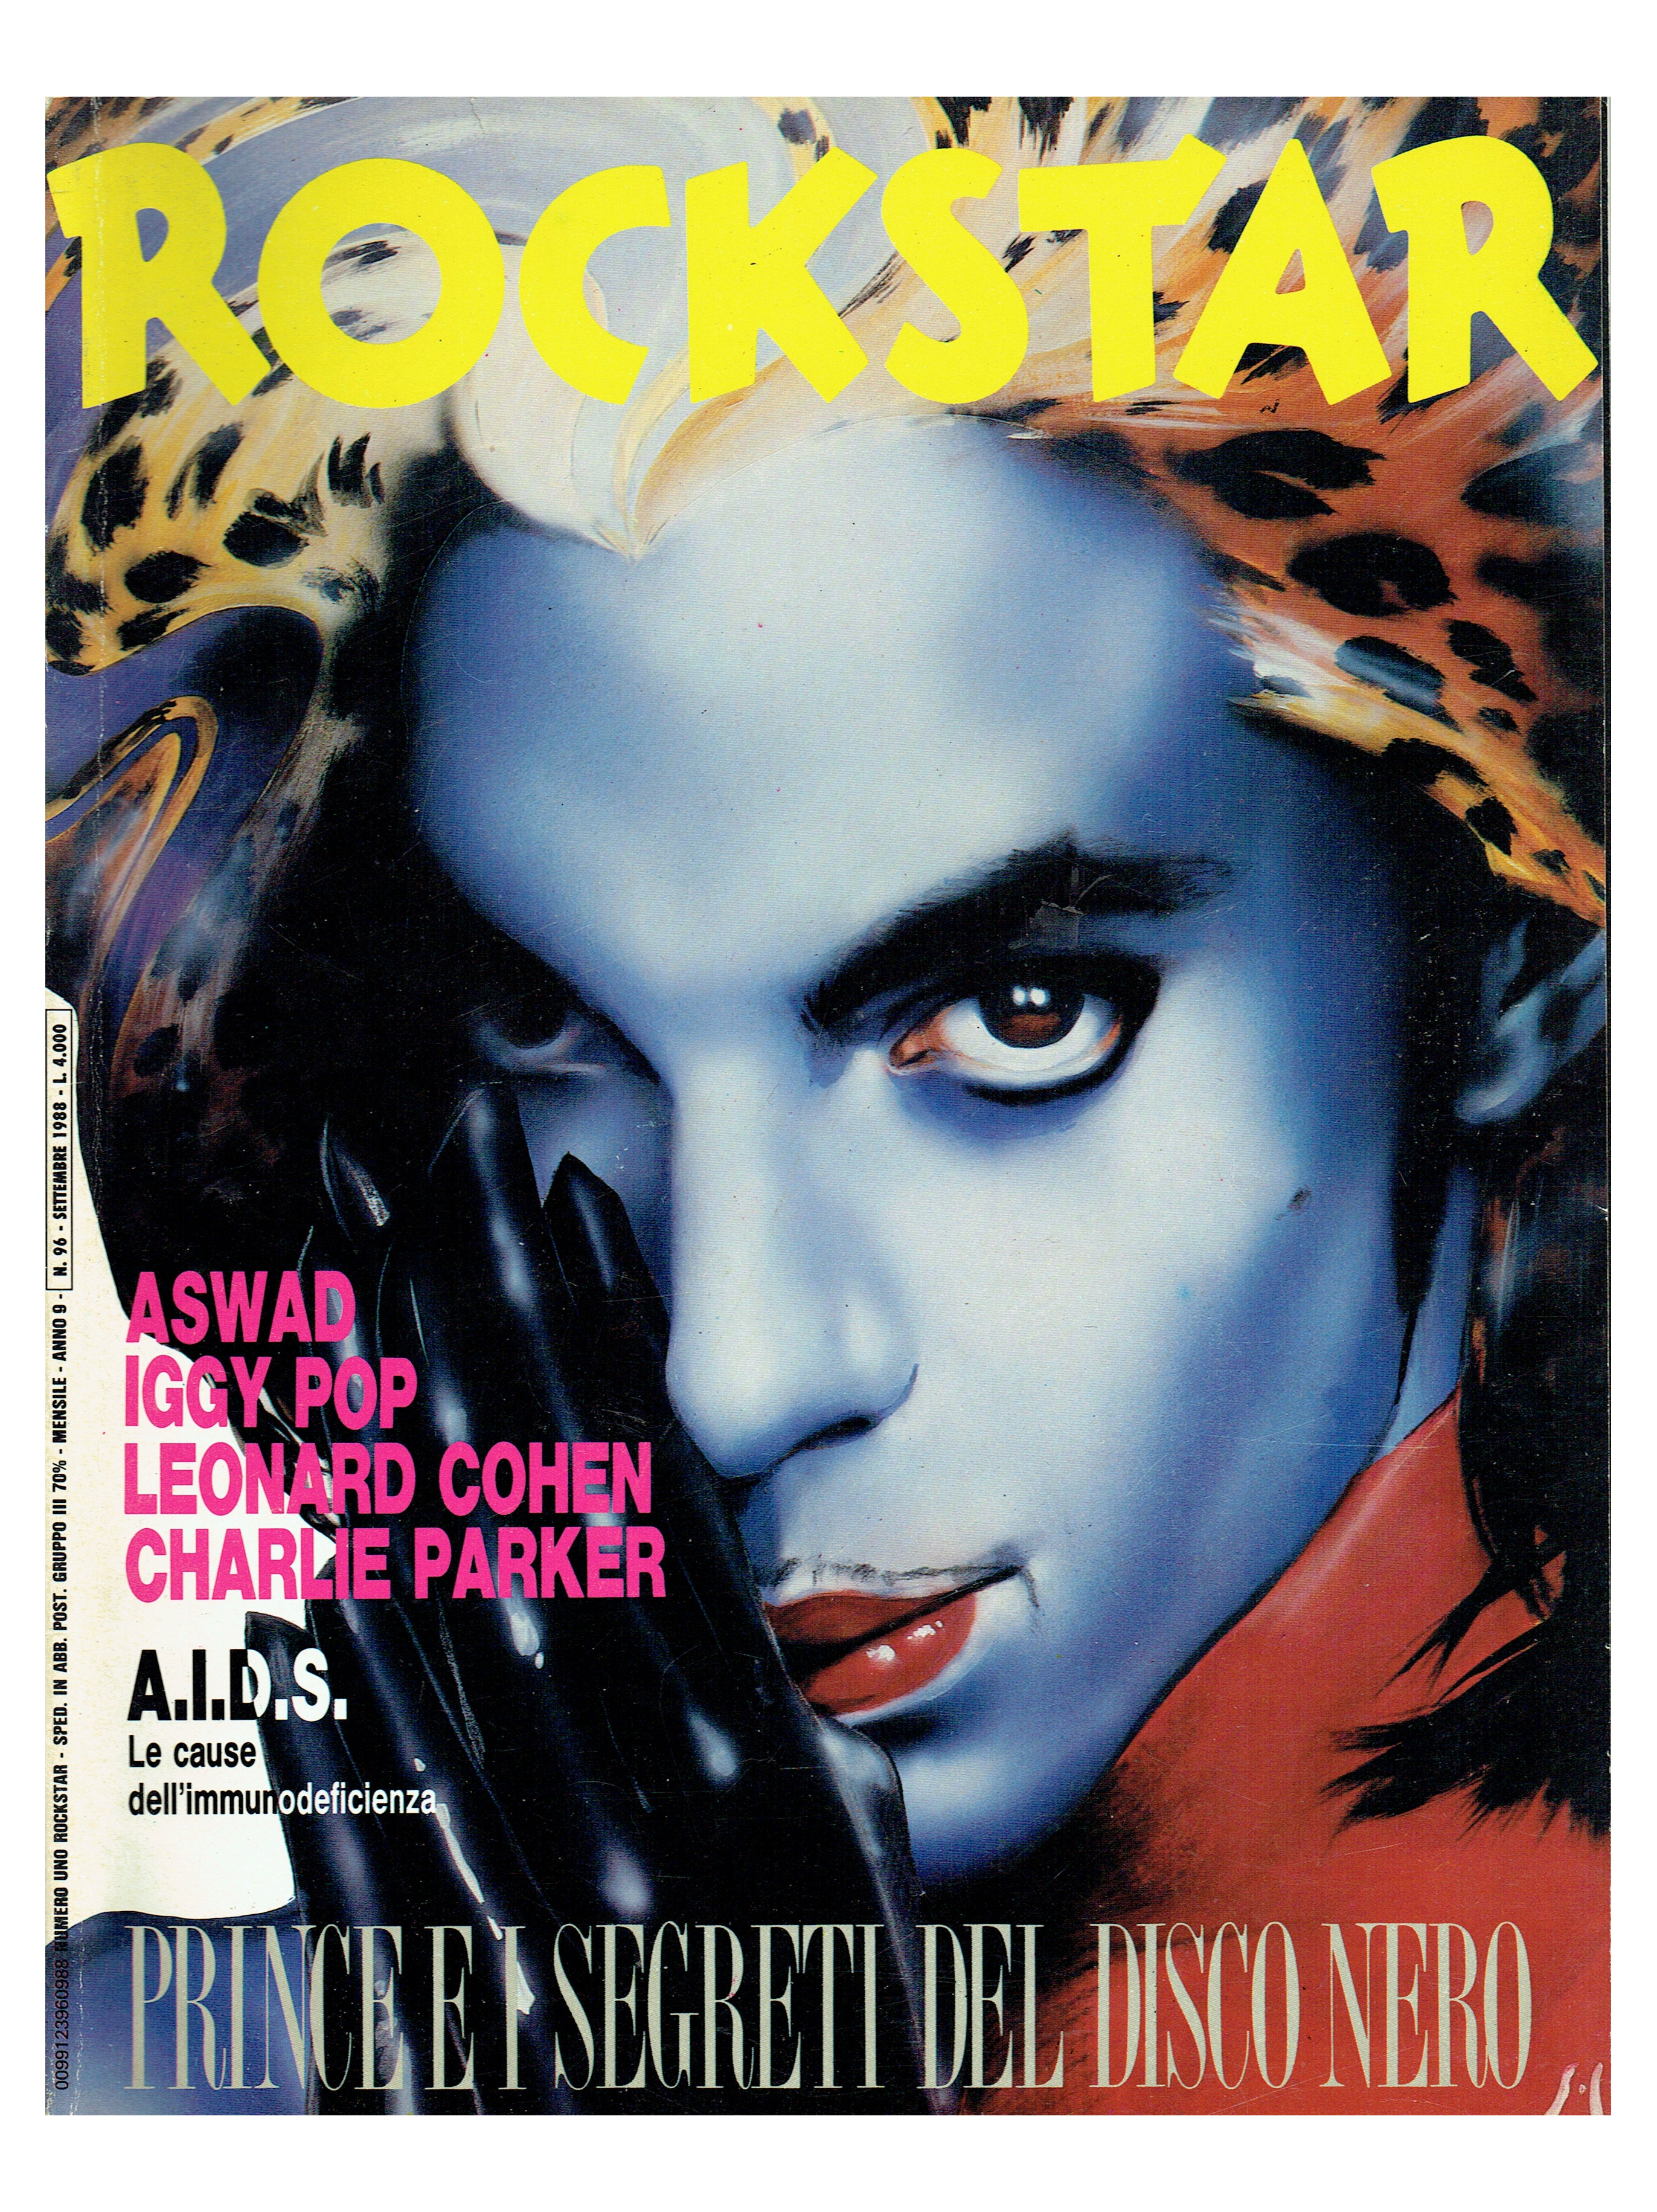 Prince ROCKSTAR September 1988 Italian Magazine Cover And 6 Page Article EX